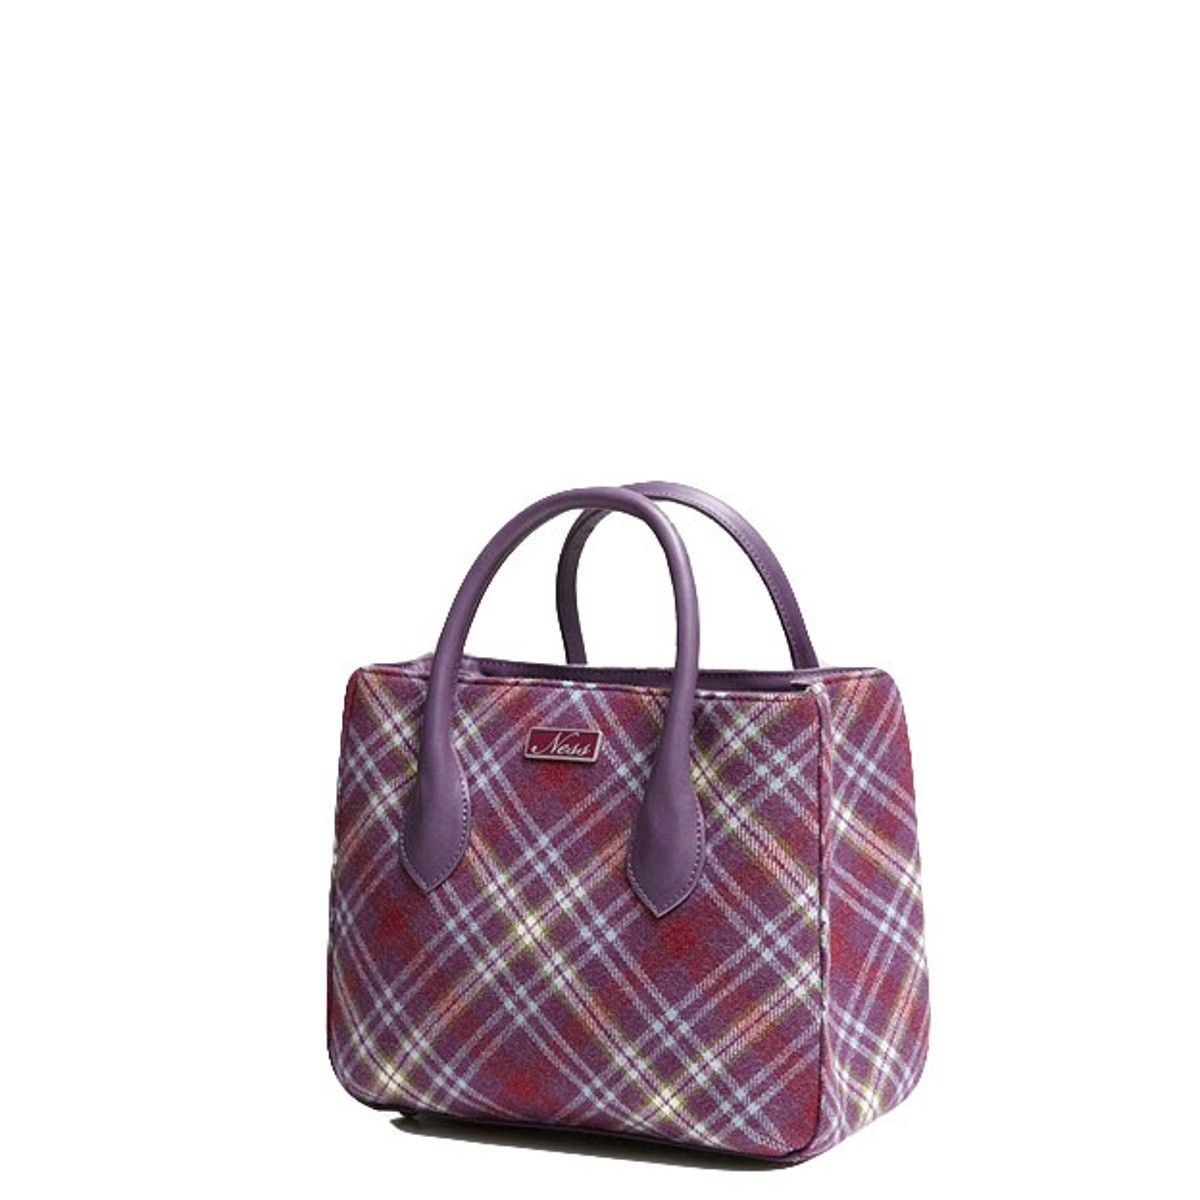 See Our Wonderful Range Of Ness Handbags And Purses At Gifts Collectables Including The Sybil Rose Street Check Handbag Sdy Uk Delivery Available